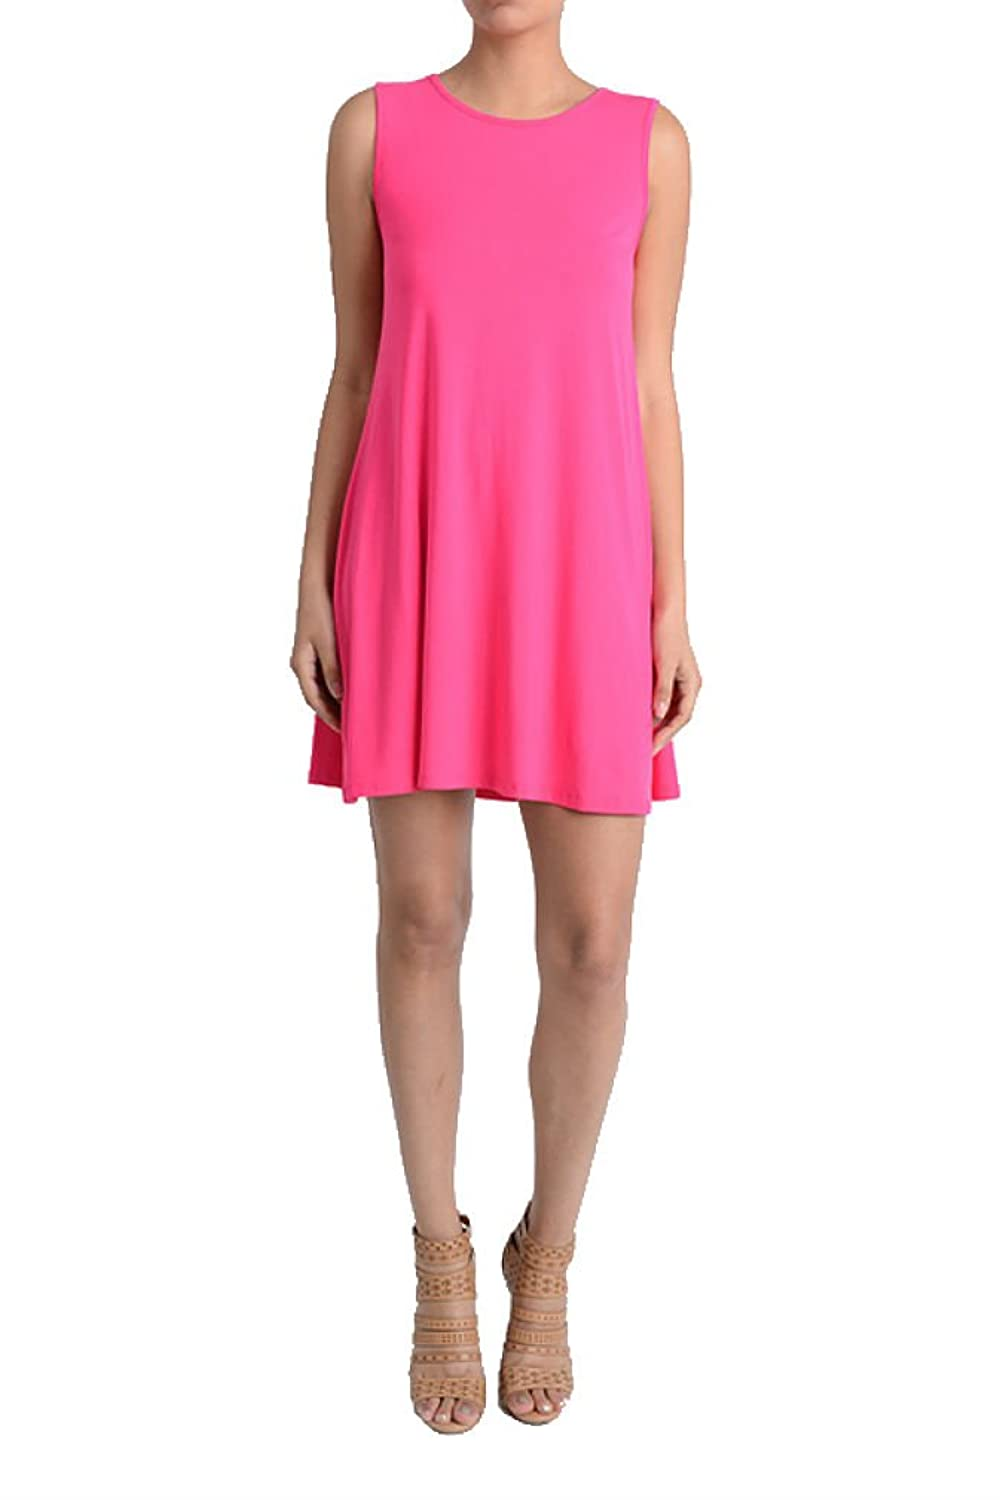 BEAUTIFUL AND TRENDY ARYEH SOLID COLOR DRESS